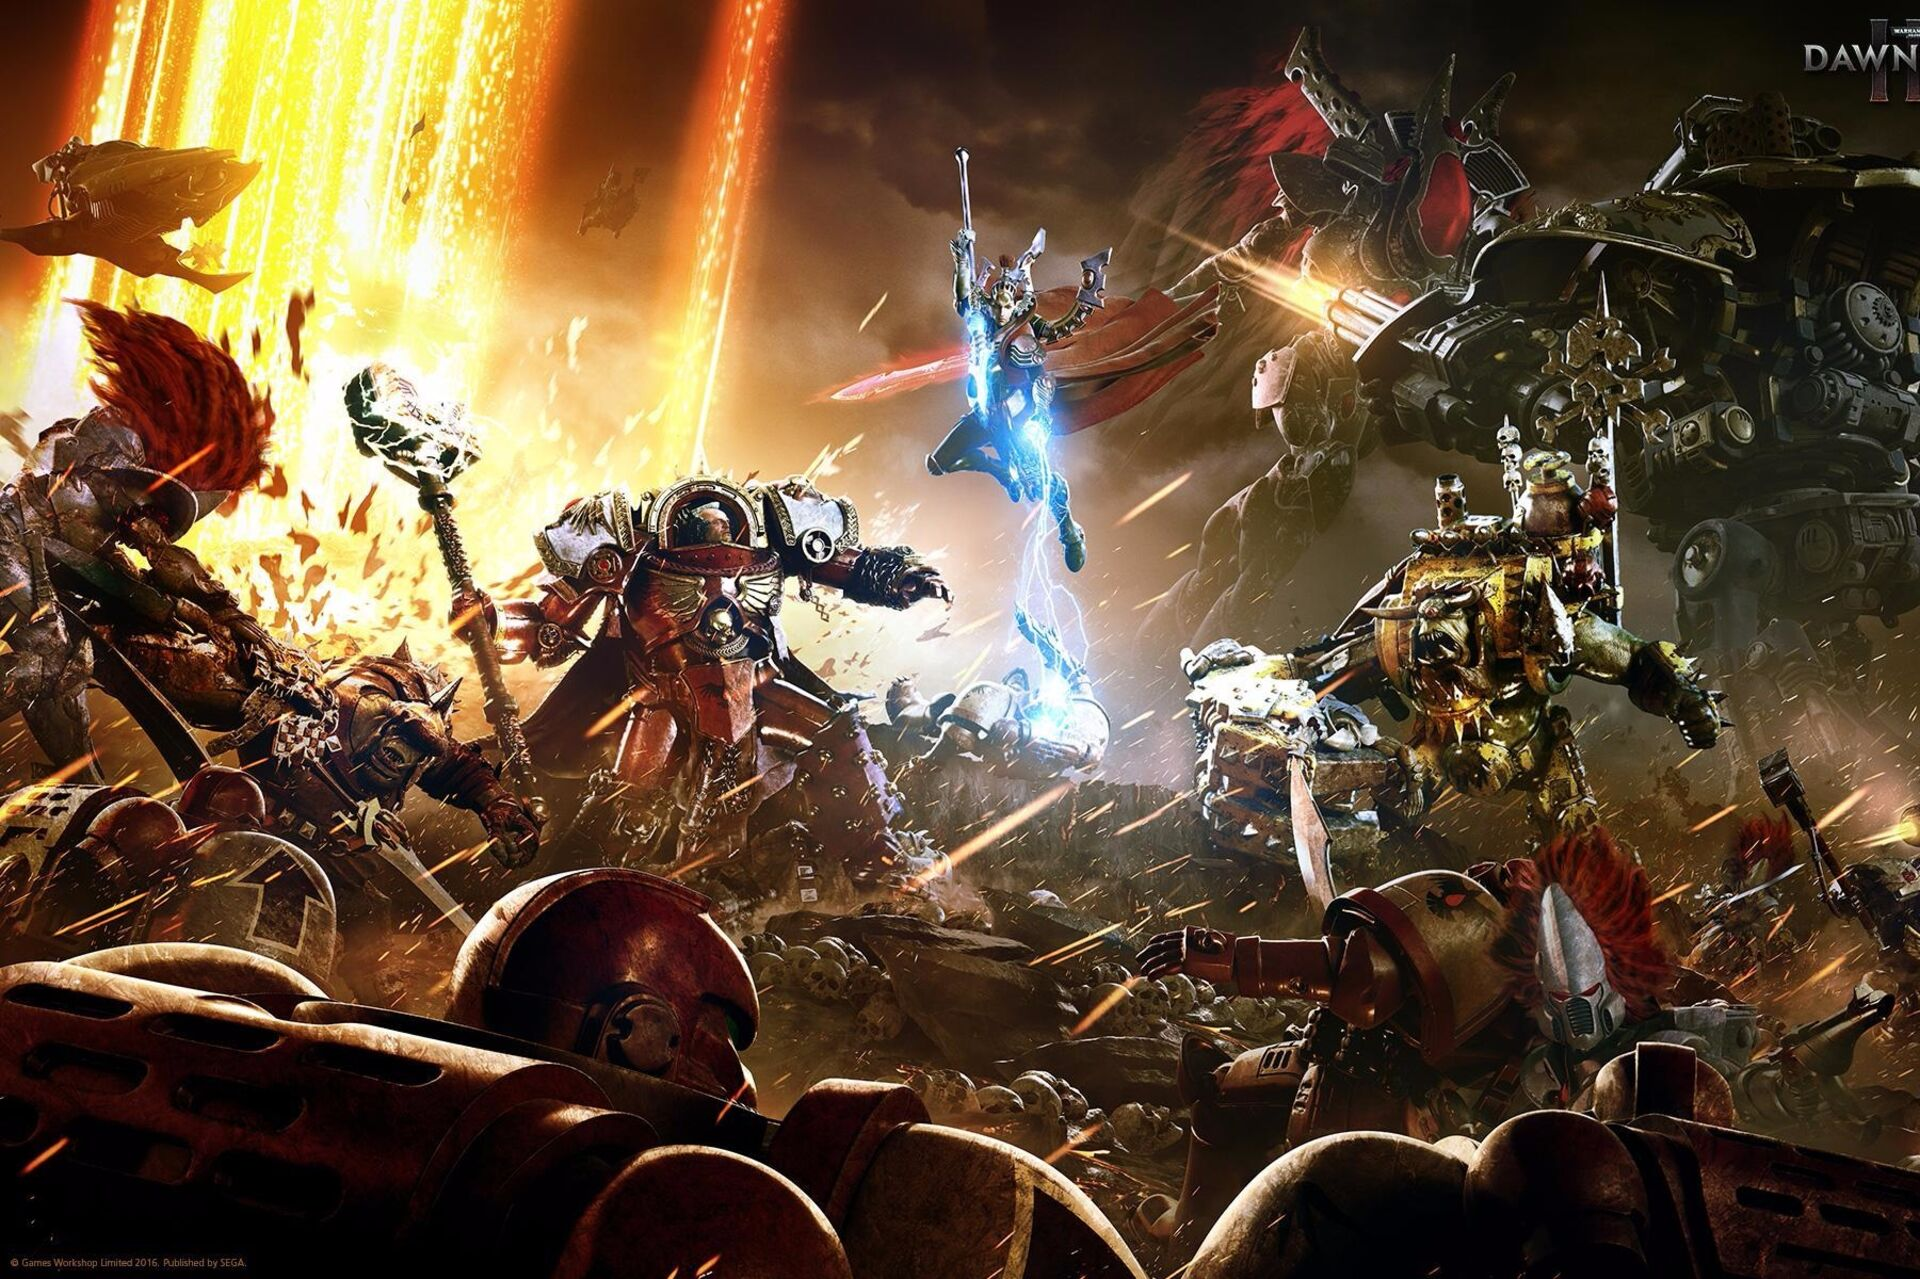 Dawn of War 3 is brutal, beautiful, and inconsistently